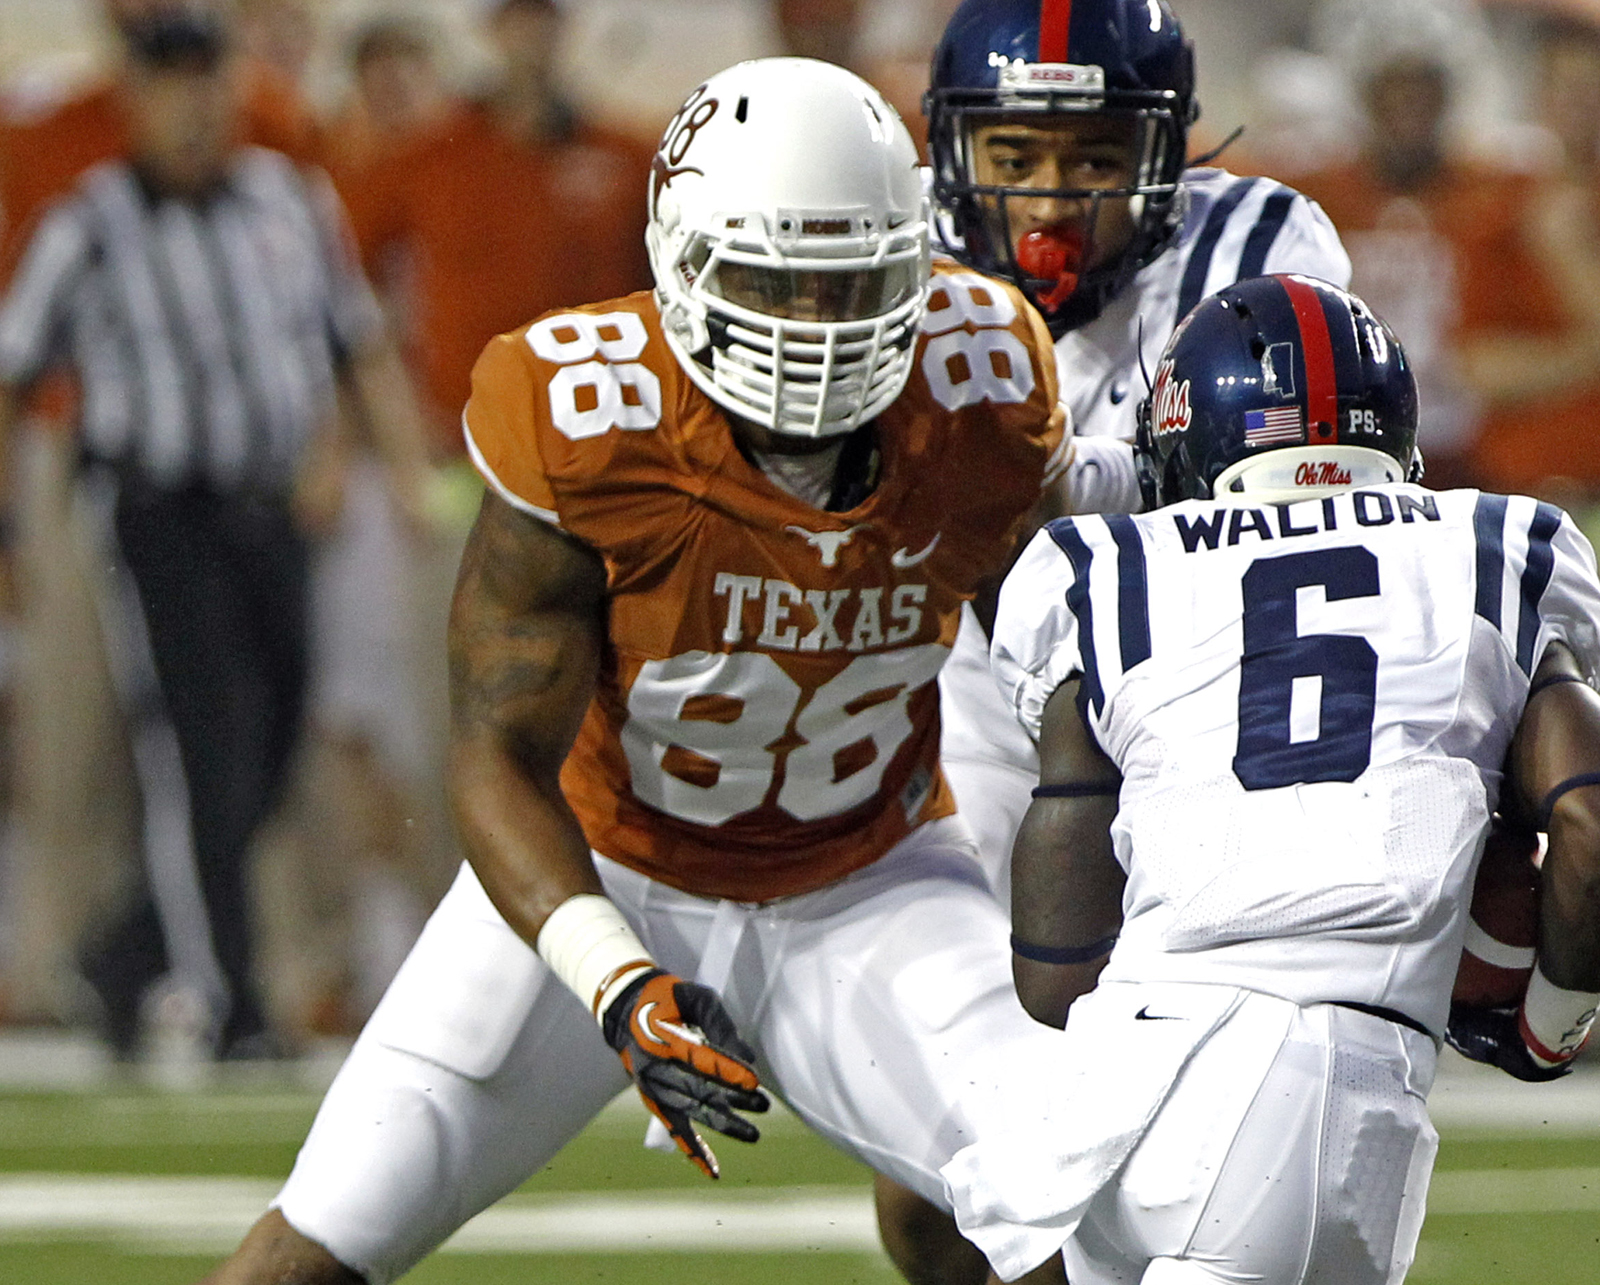 Texas defender Cedric Reed (88) defends against Mississippi running back Jaylen Walton (6) during the second quarter of an NCAA college football game Saturday, Sept. 14, 2013, in Austin, Texas. (Michael Thomas/Associated Press)